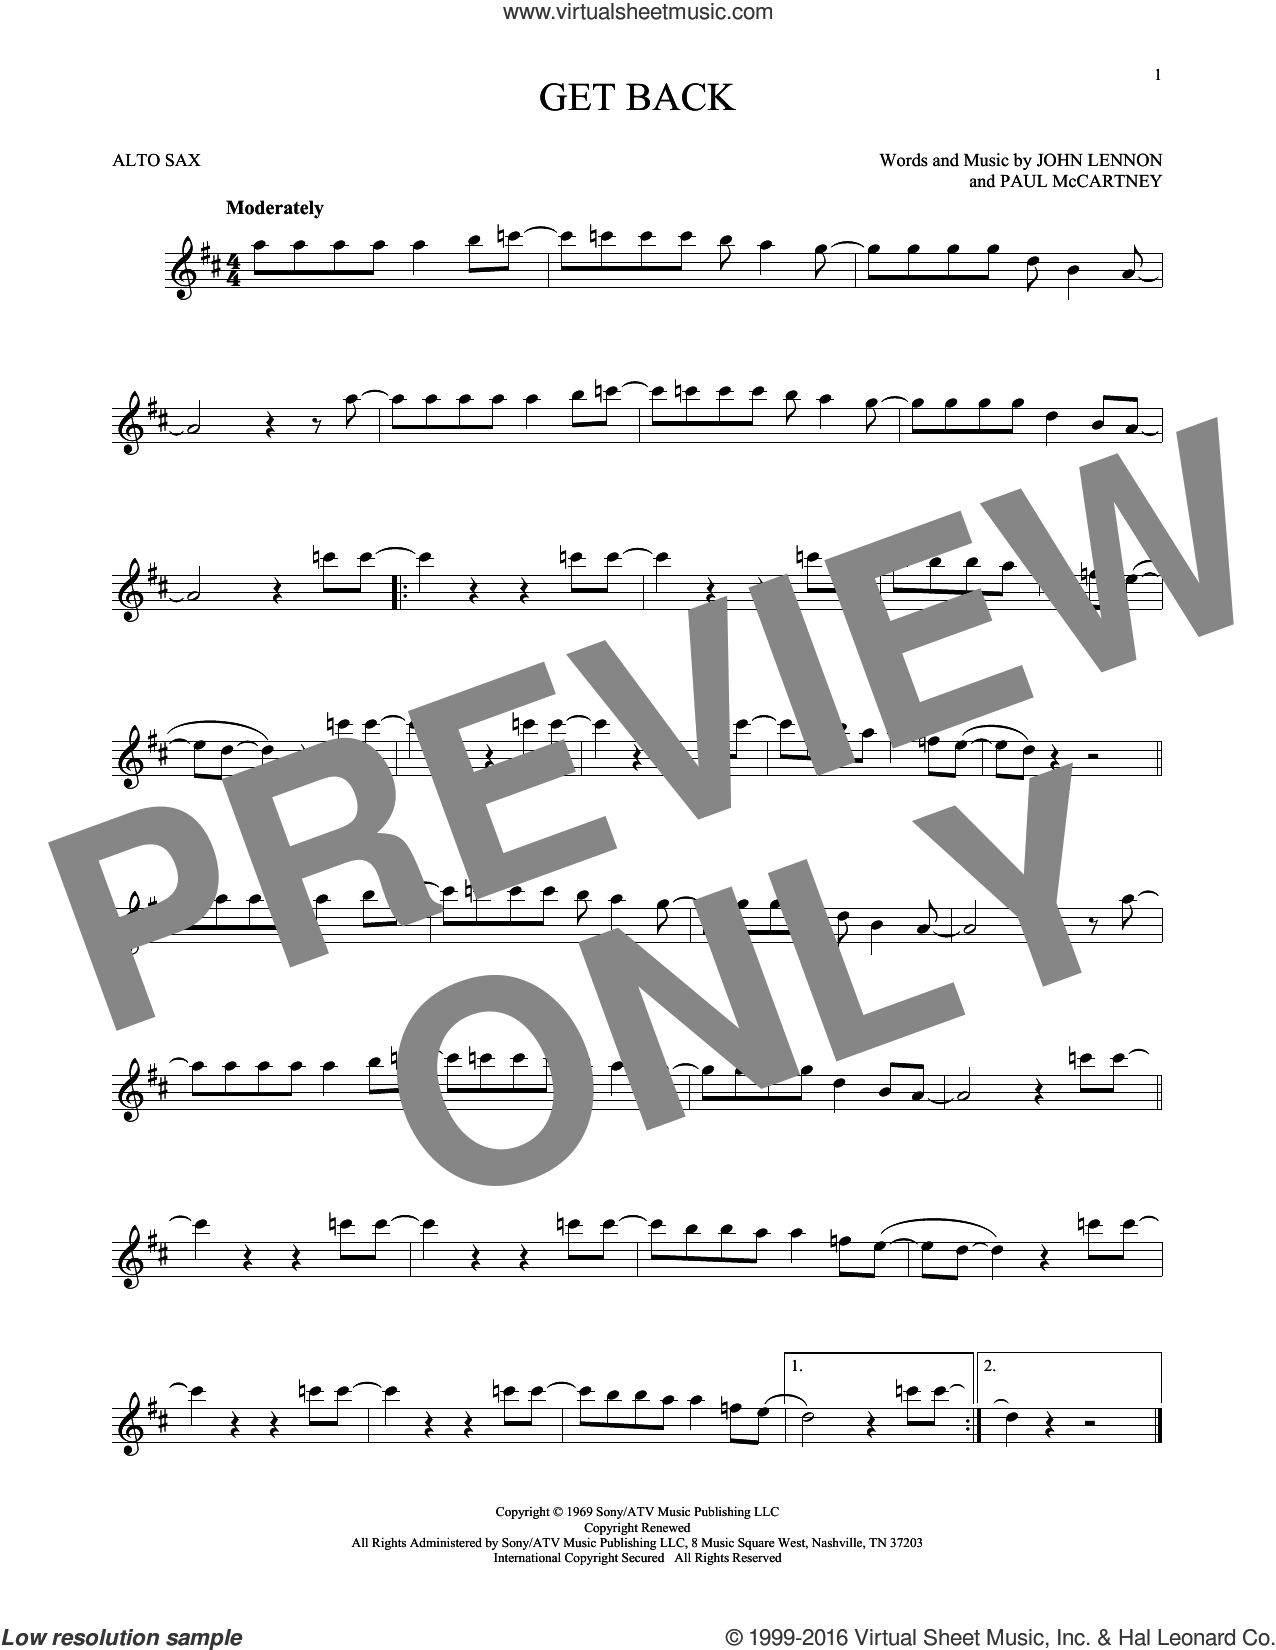 Get Back sheet music for alto saxophone solo by The Beatles, John Lennon and Paul McCartney, intermediate skill level